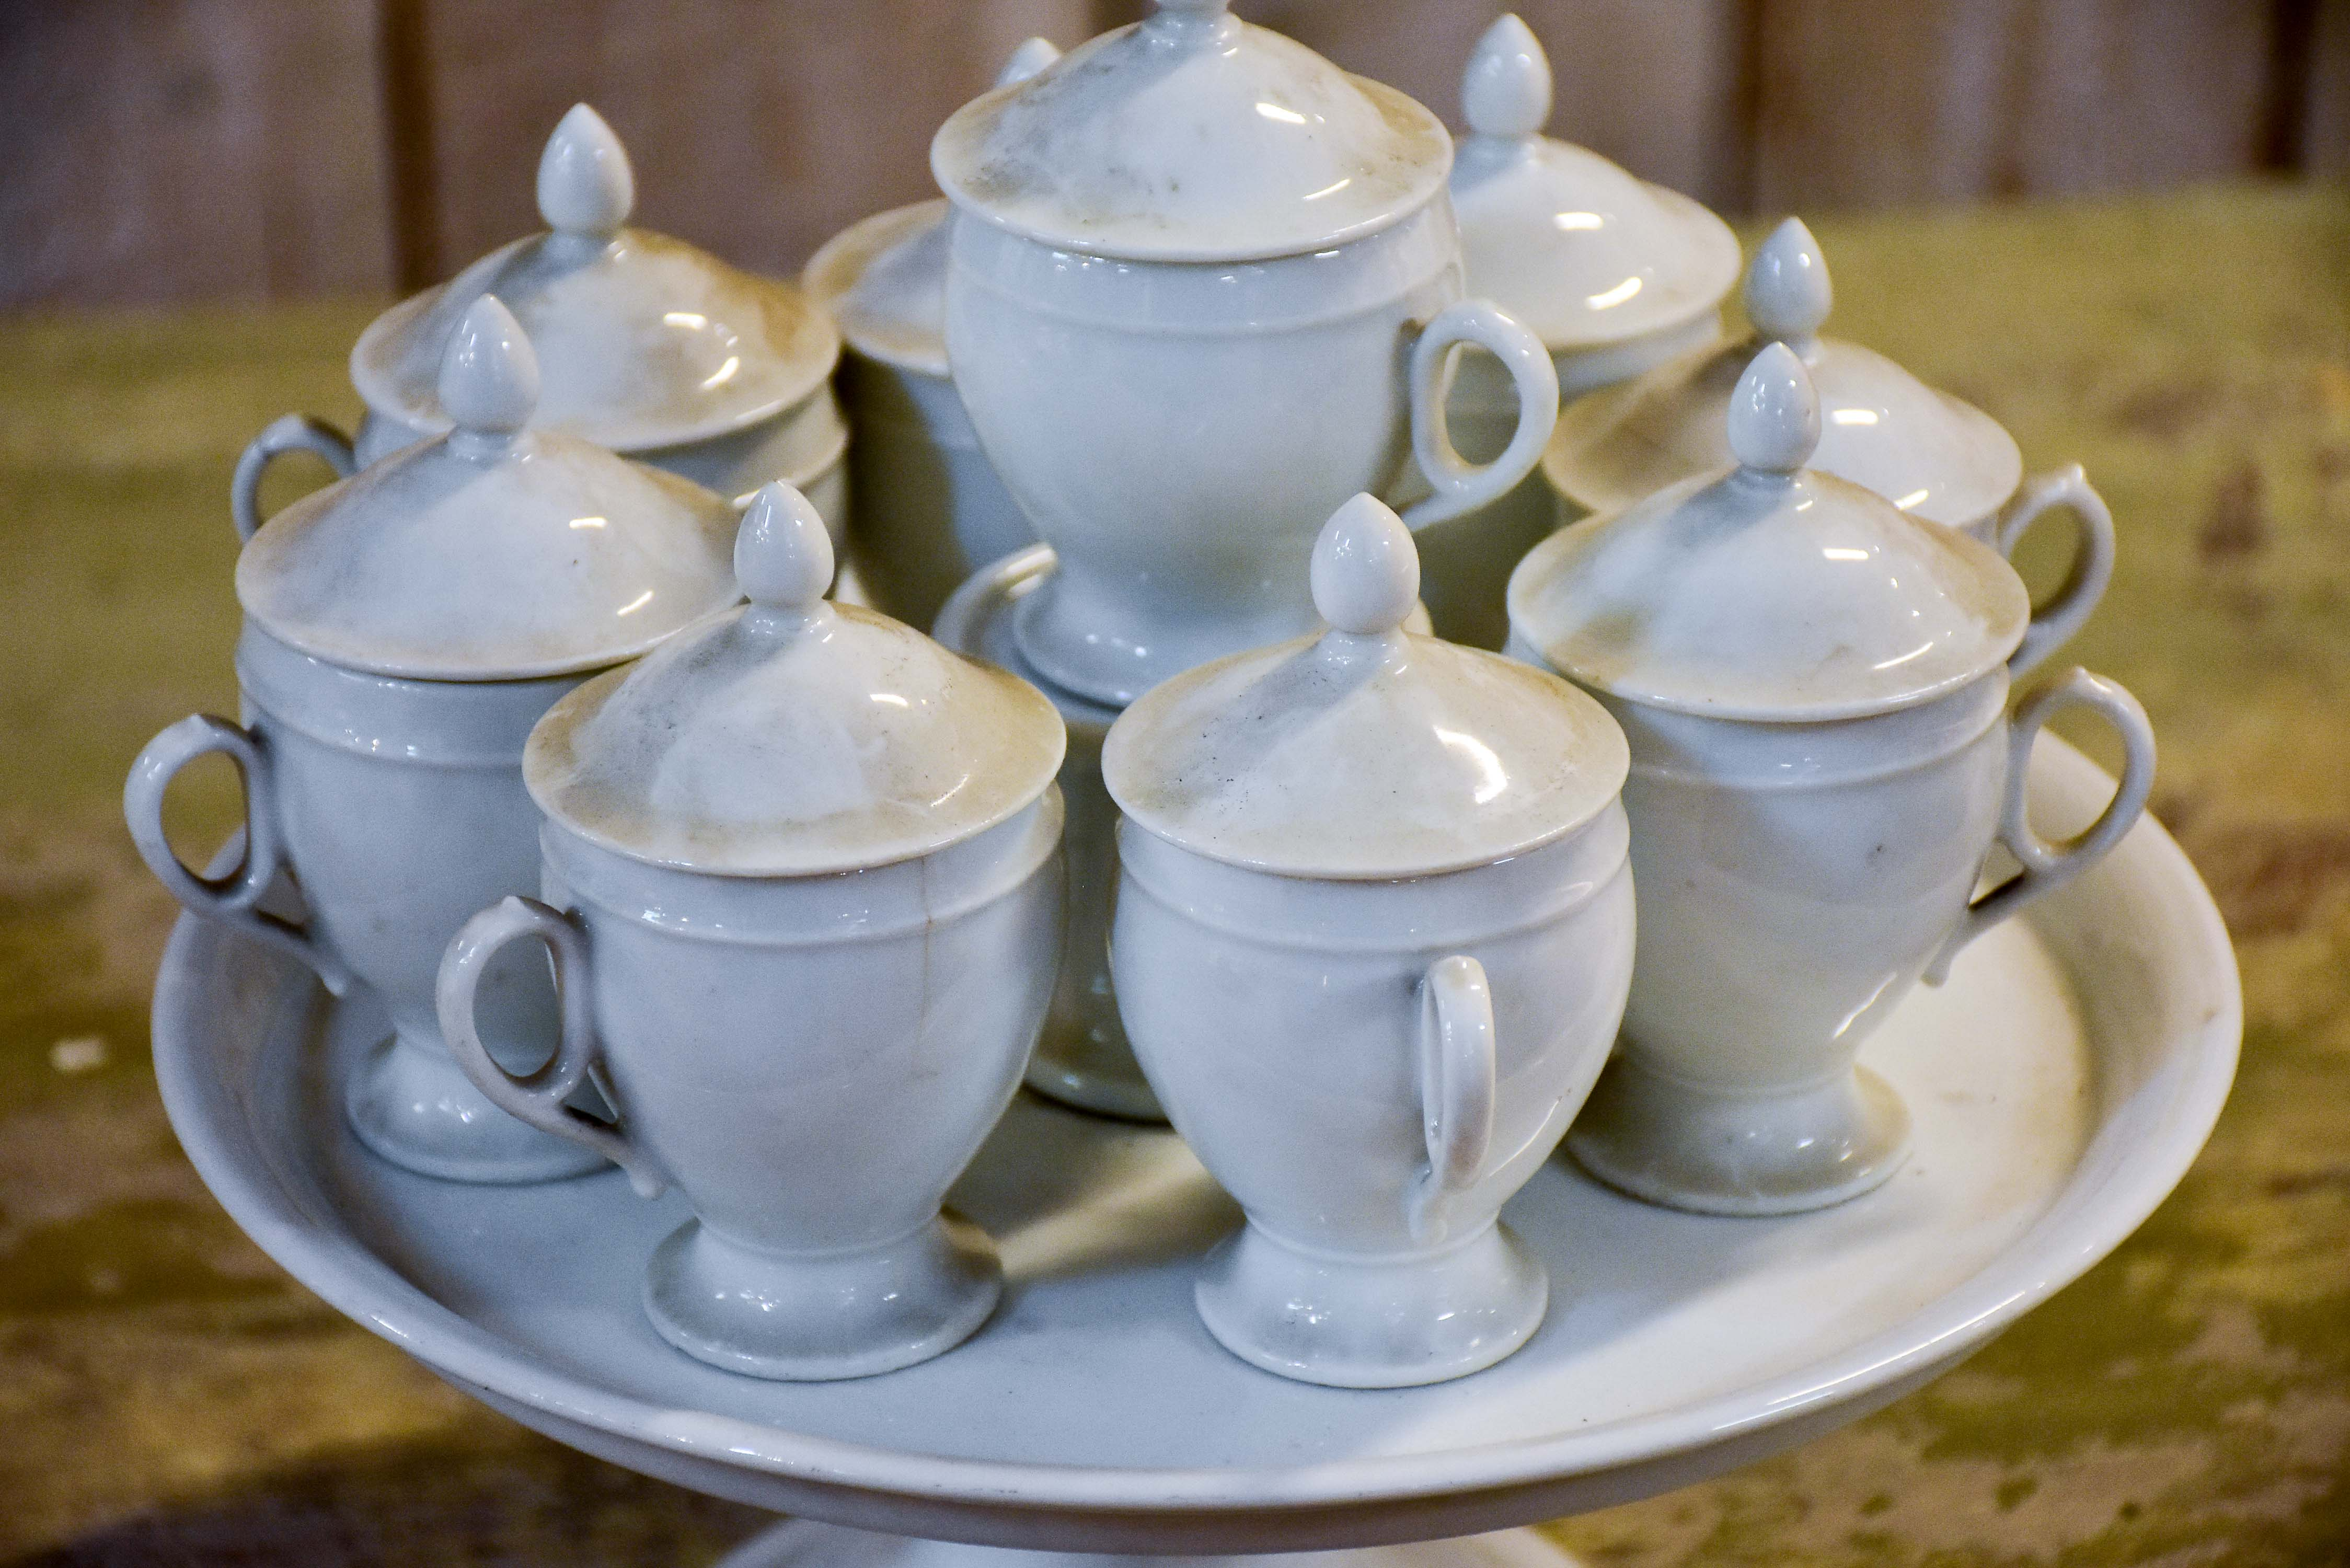 Antique French stoneware - cream pots with lids